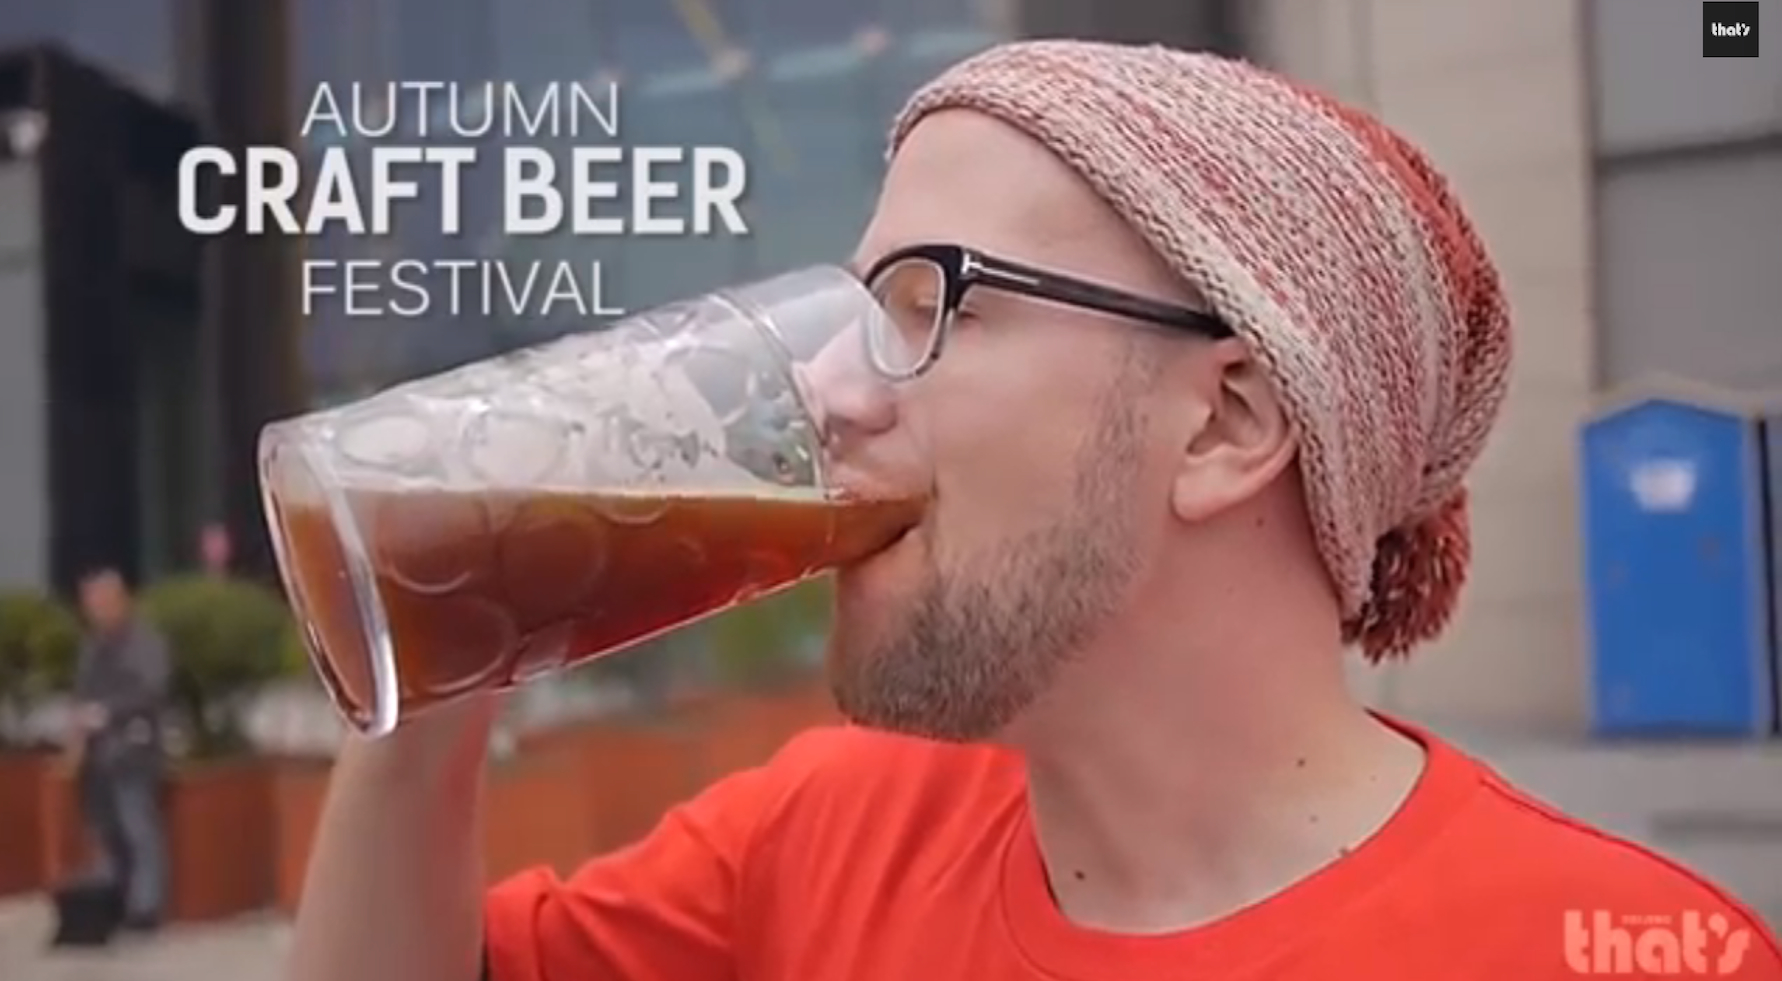 Video Round-up of the Autumn Craft Beer Festival